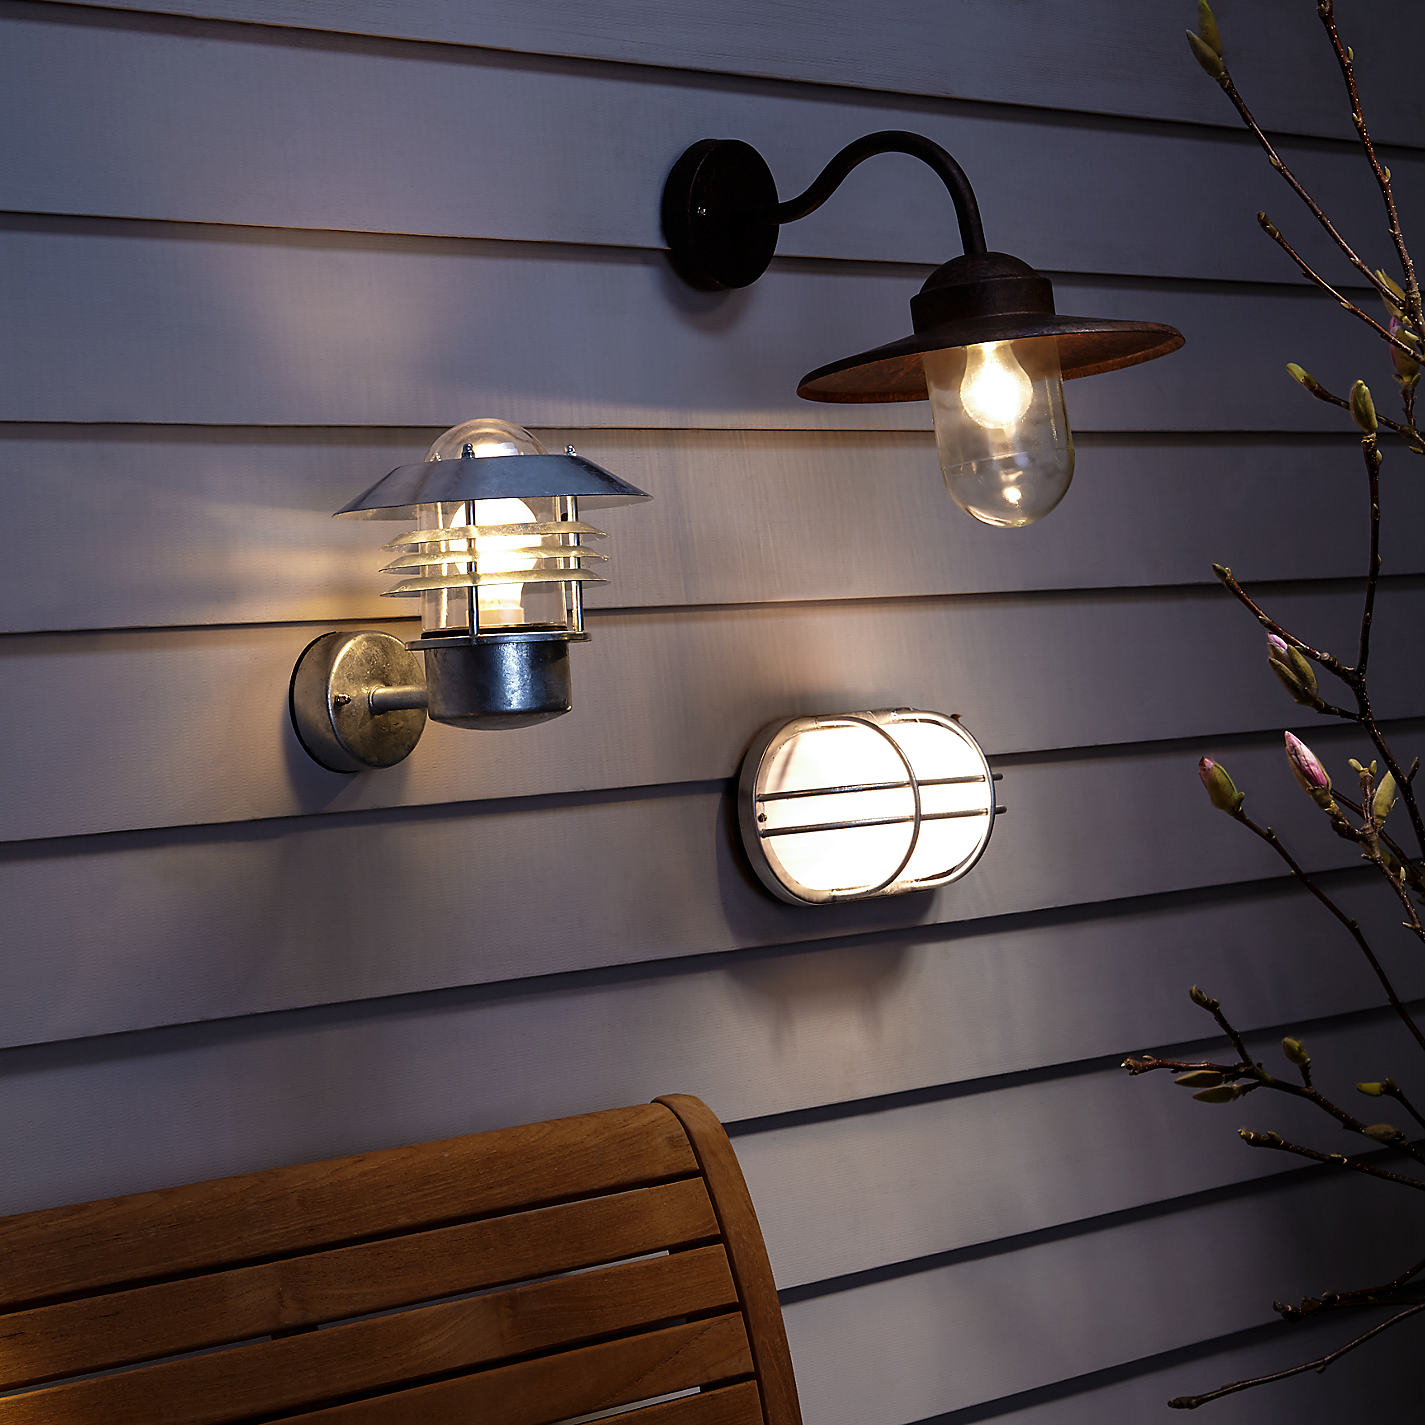 Buy Nordlux Vejers Outdoor Wall Light, Galvanised Steel | John Lewis